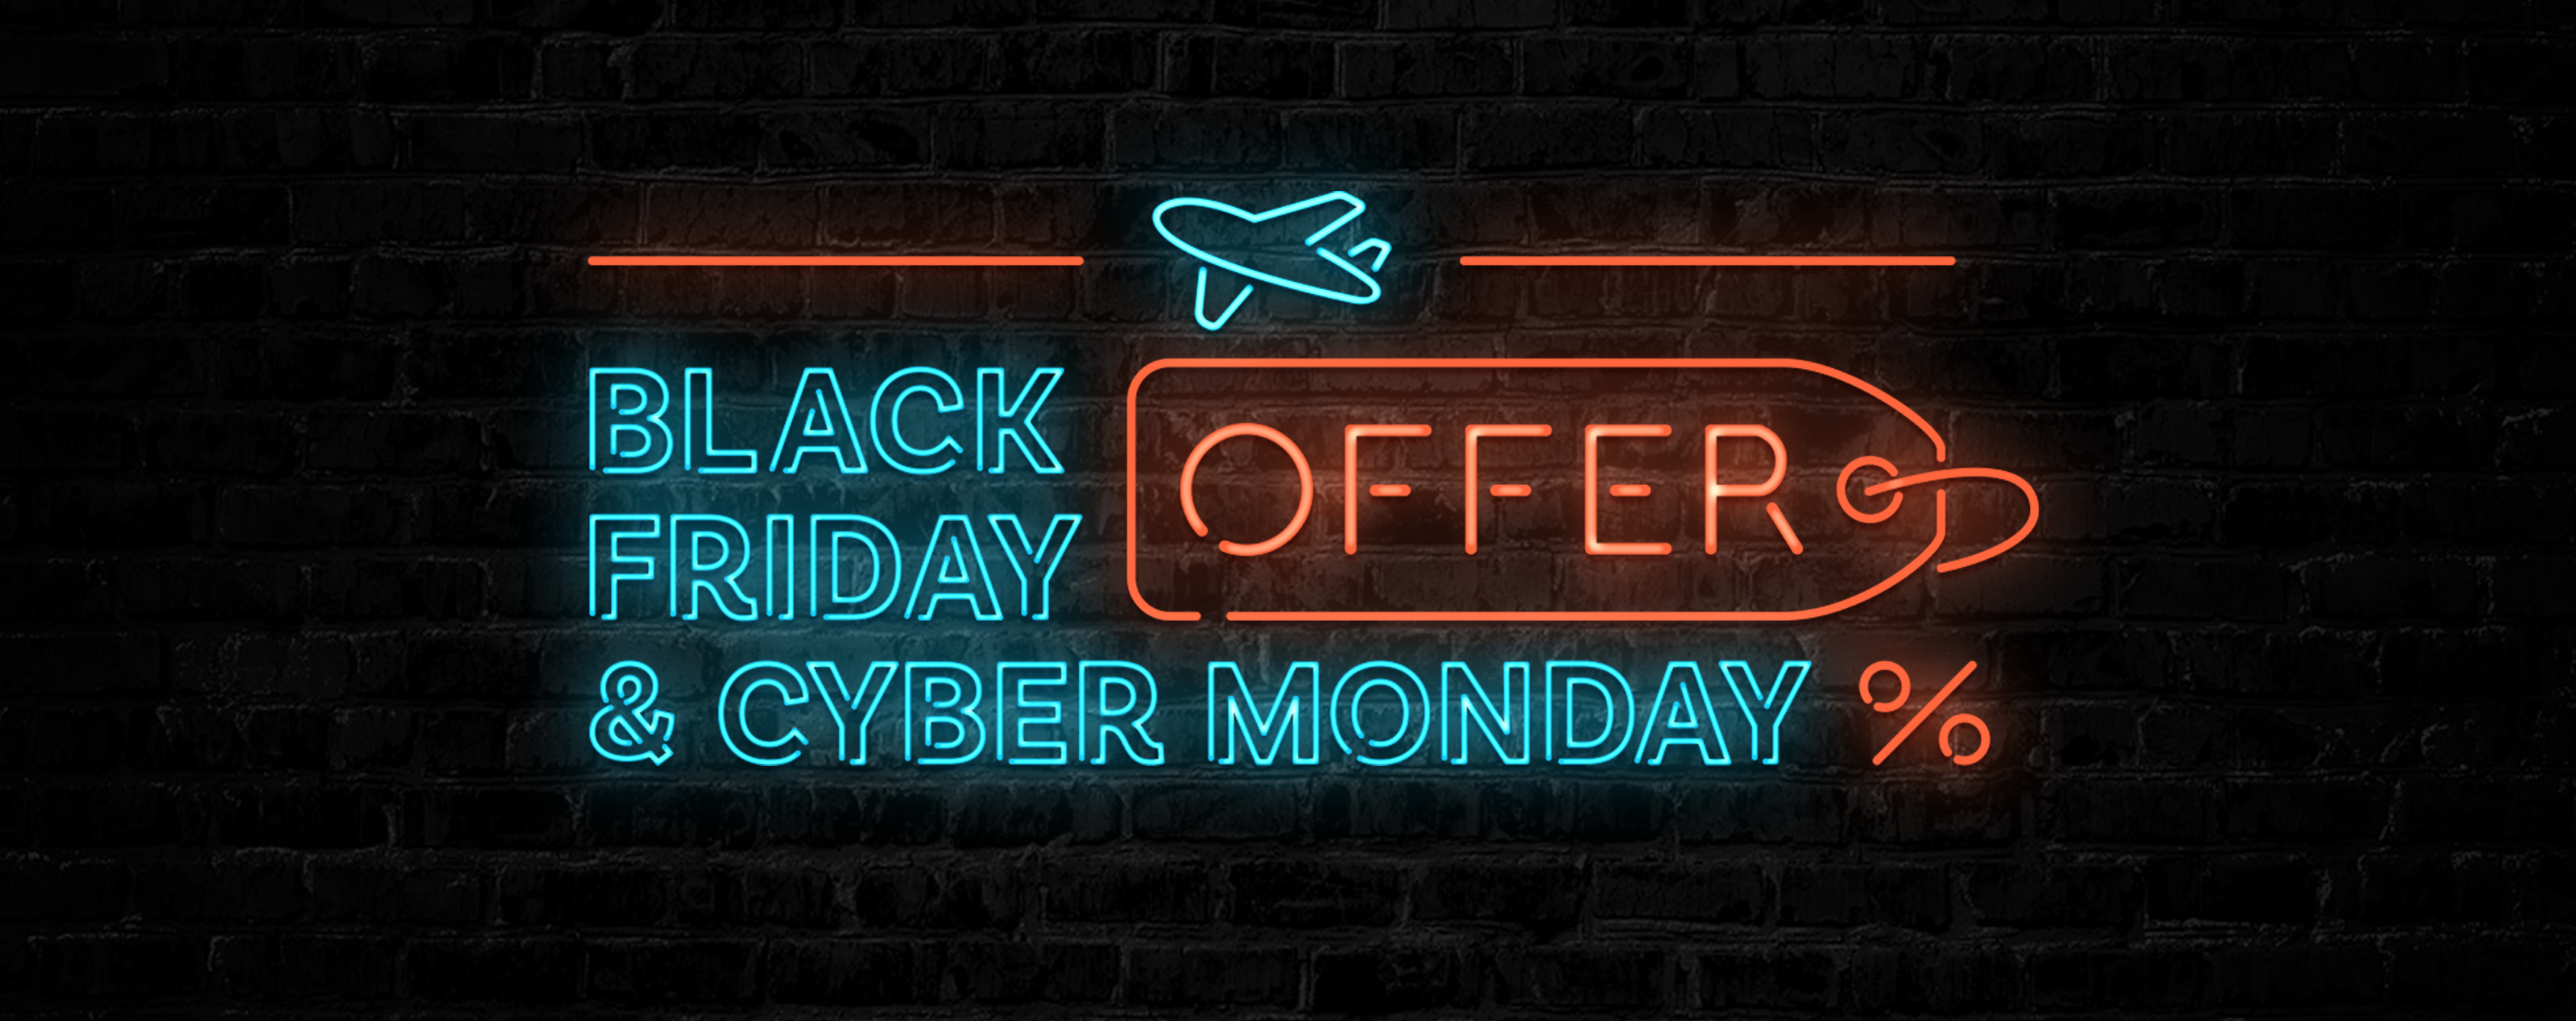 Black Friday / Cyber Monday Offers